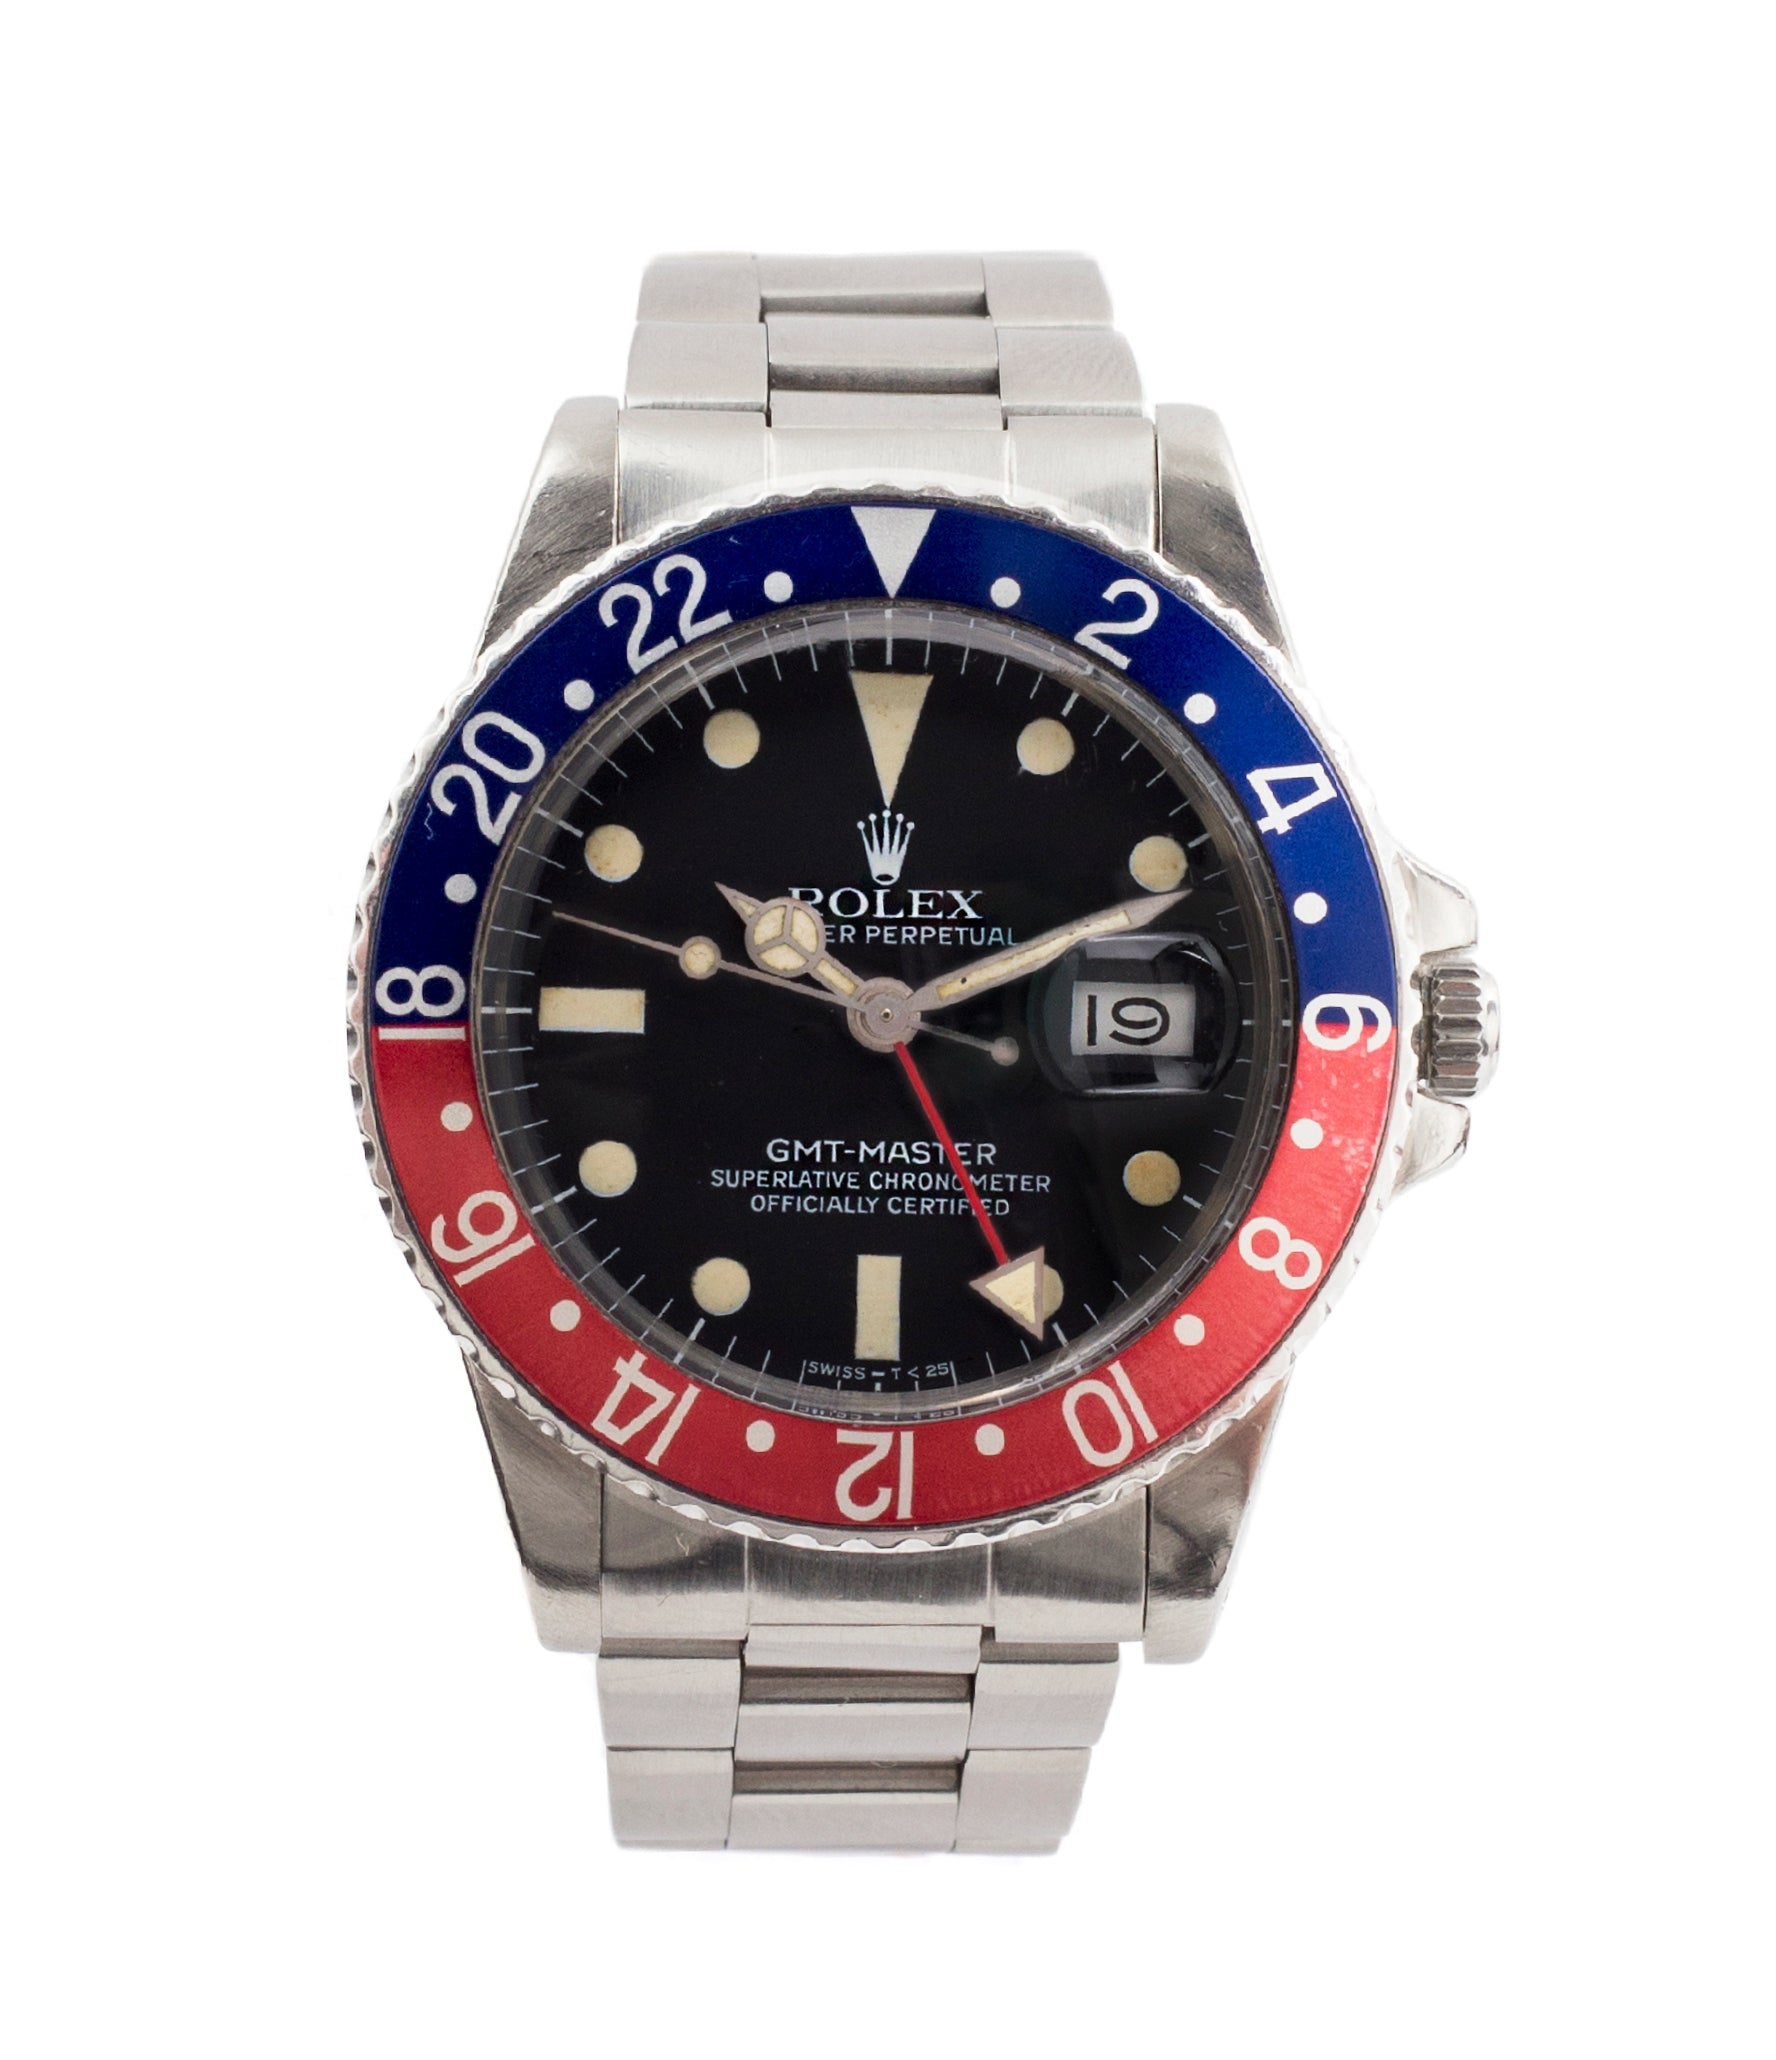 buy vintage Rolex GMT-Master 16750 steel sport traveller watch for sale online at A Collected Man London vintage watch specialist